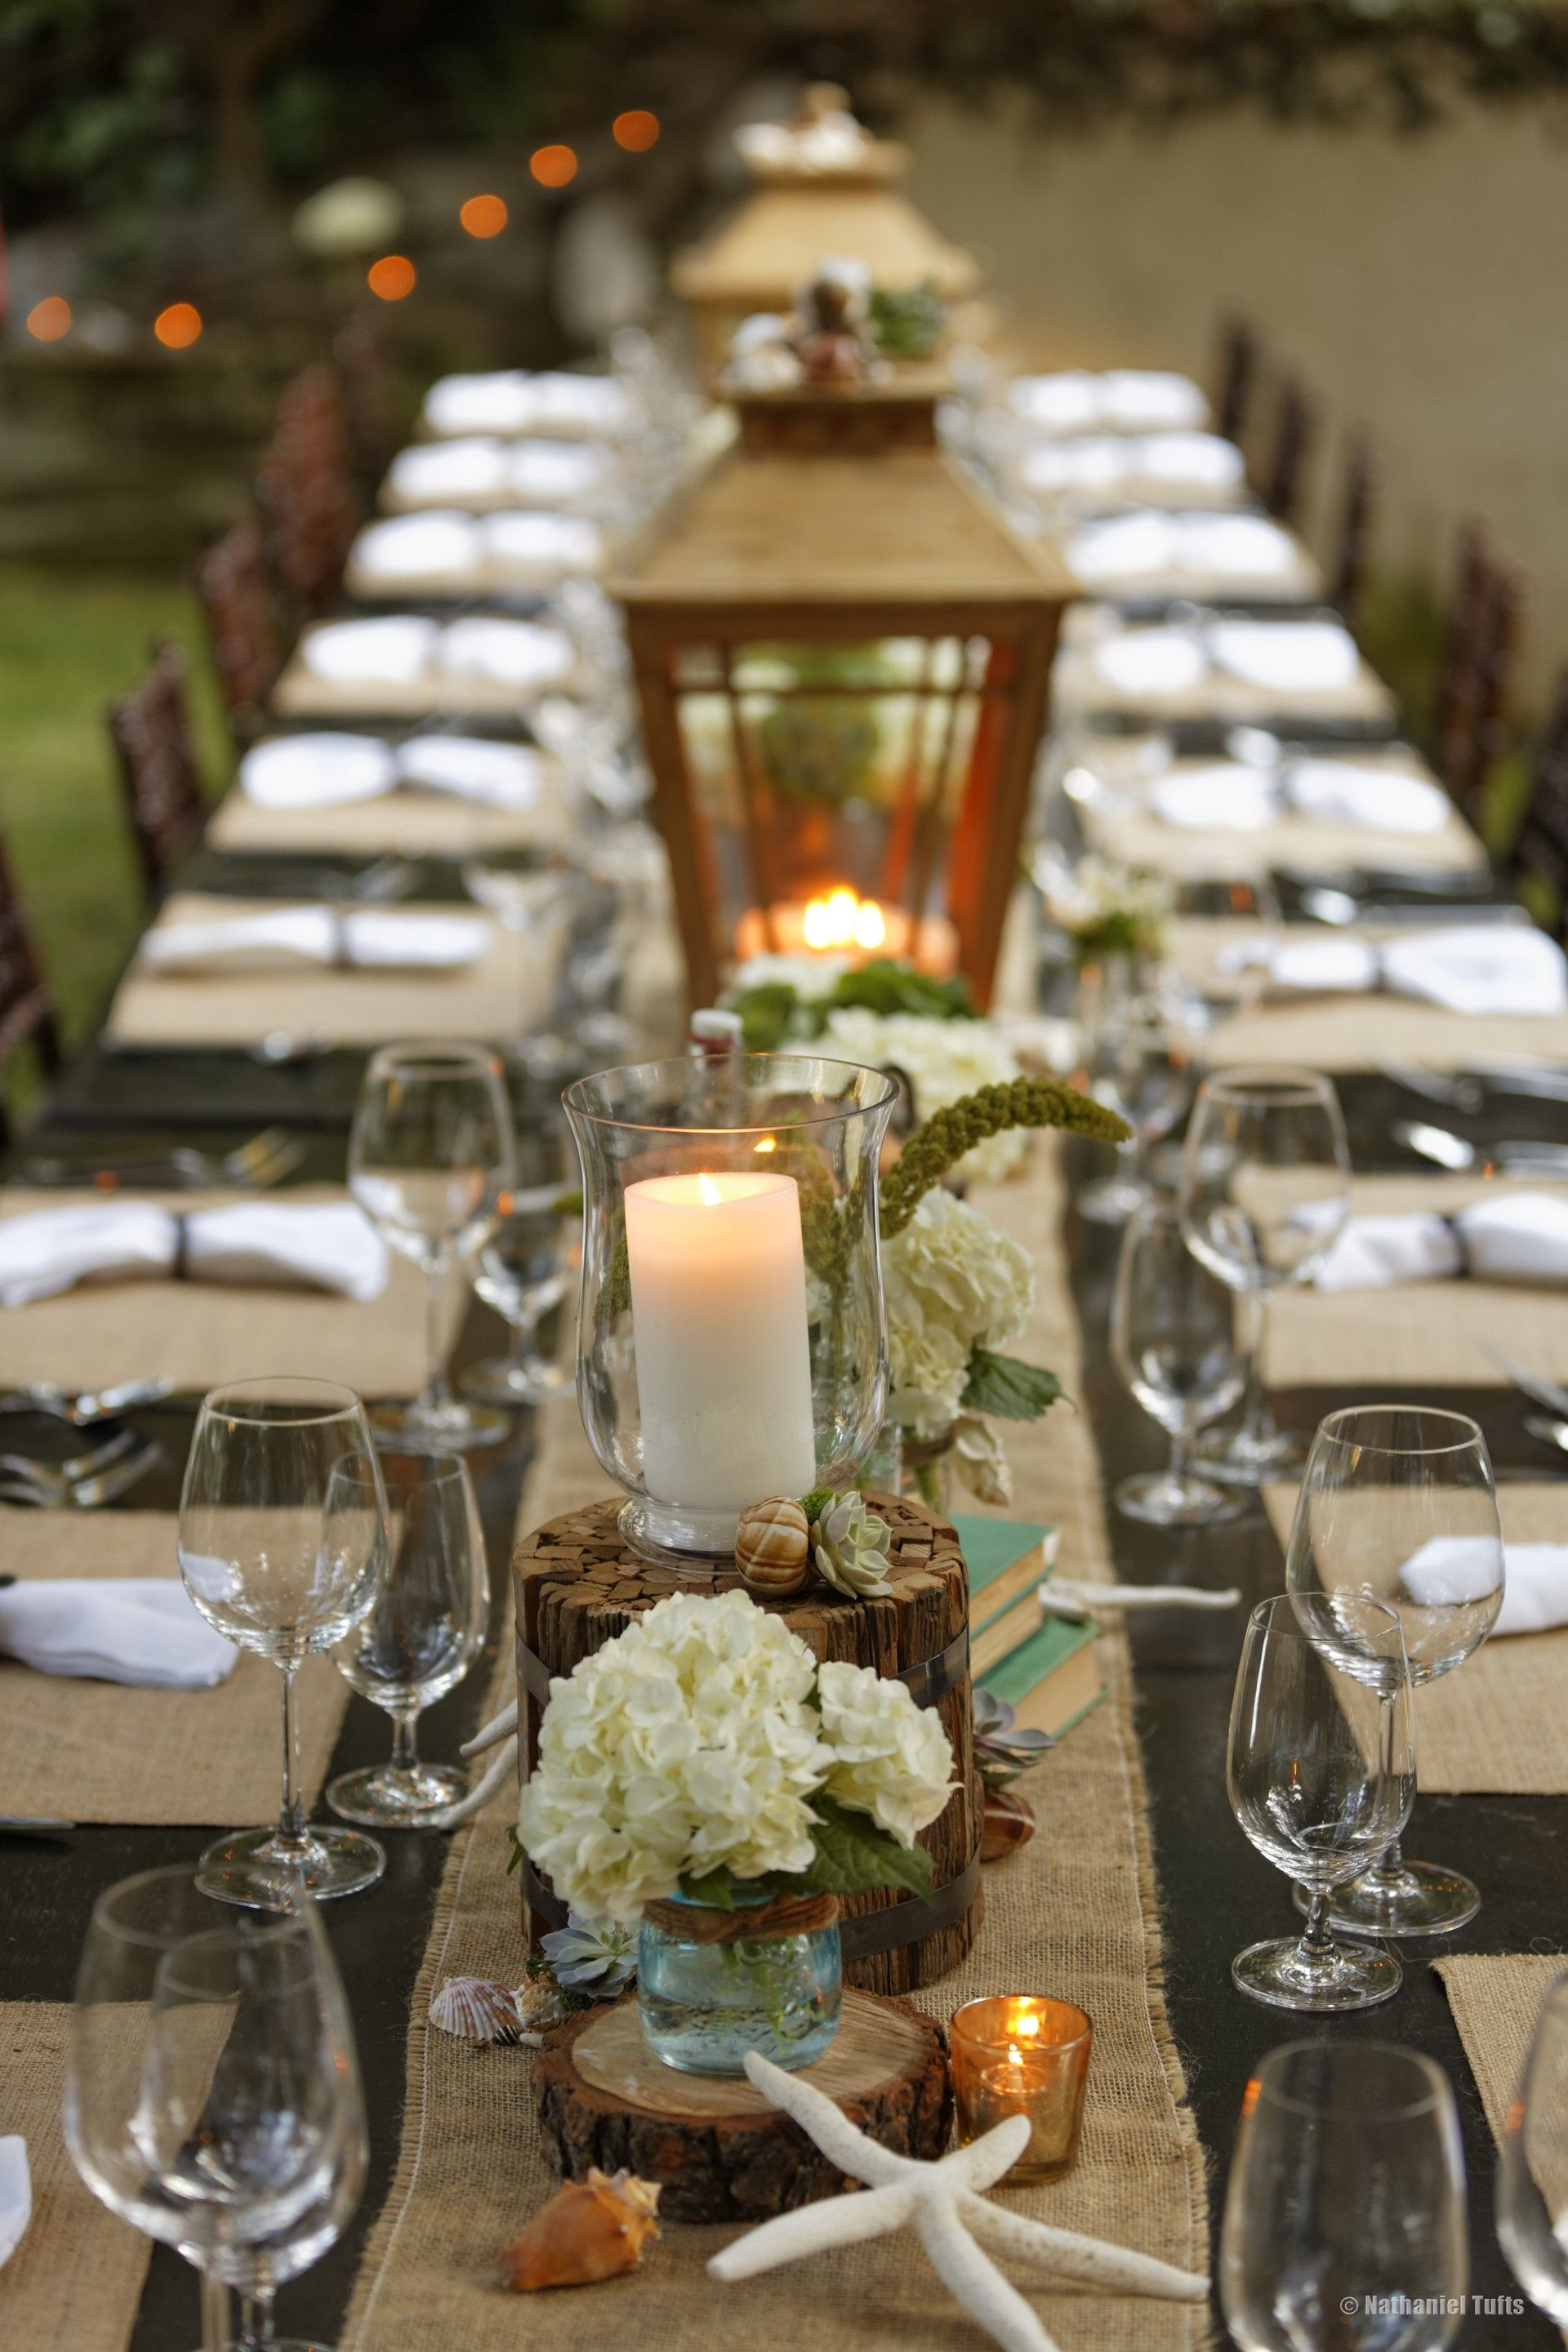 Rustic Cape Cod Dinner Party With White Hydrangeas Lining The Table Photography Nathaniel Tufts